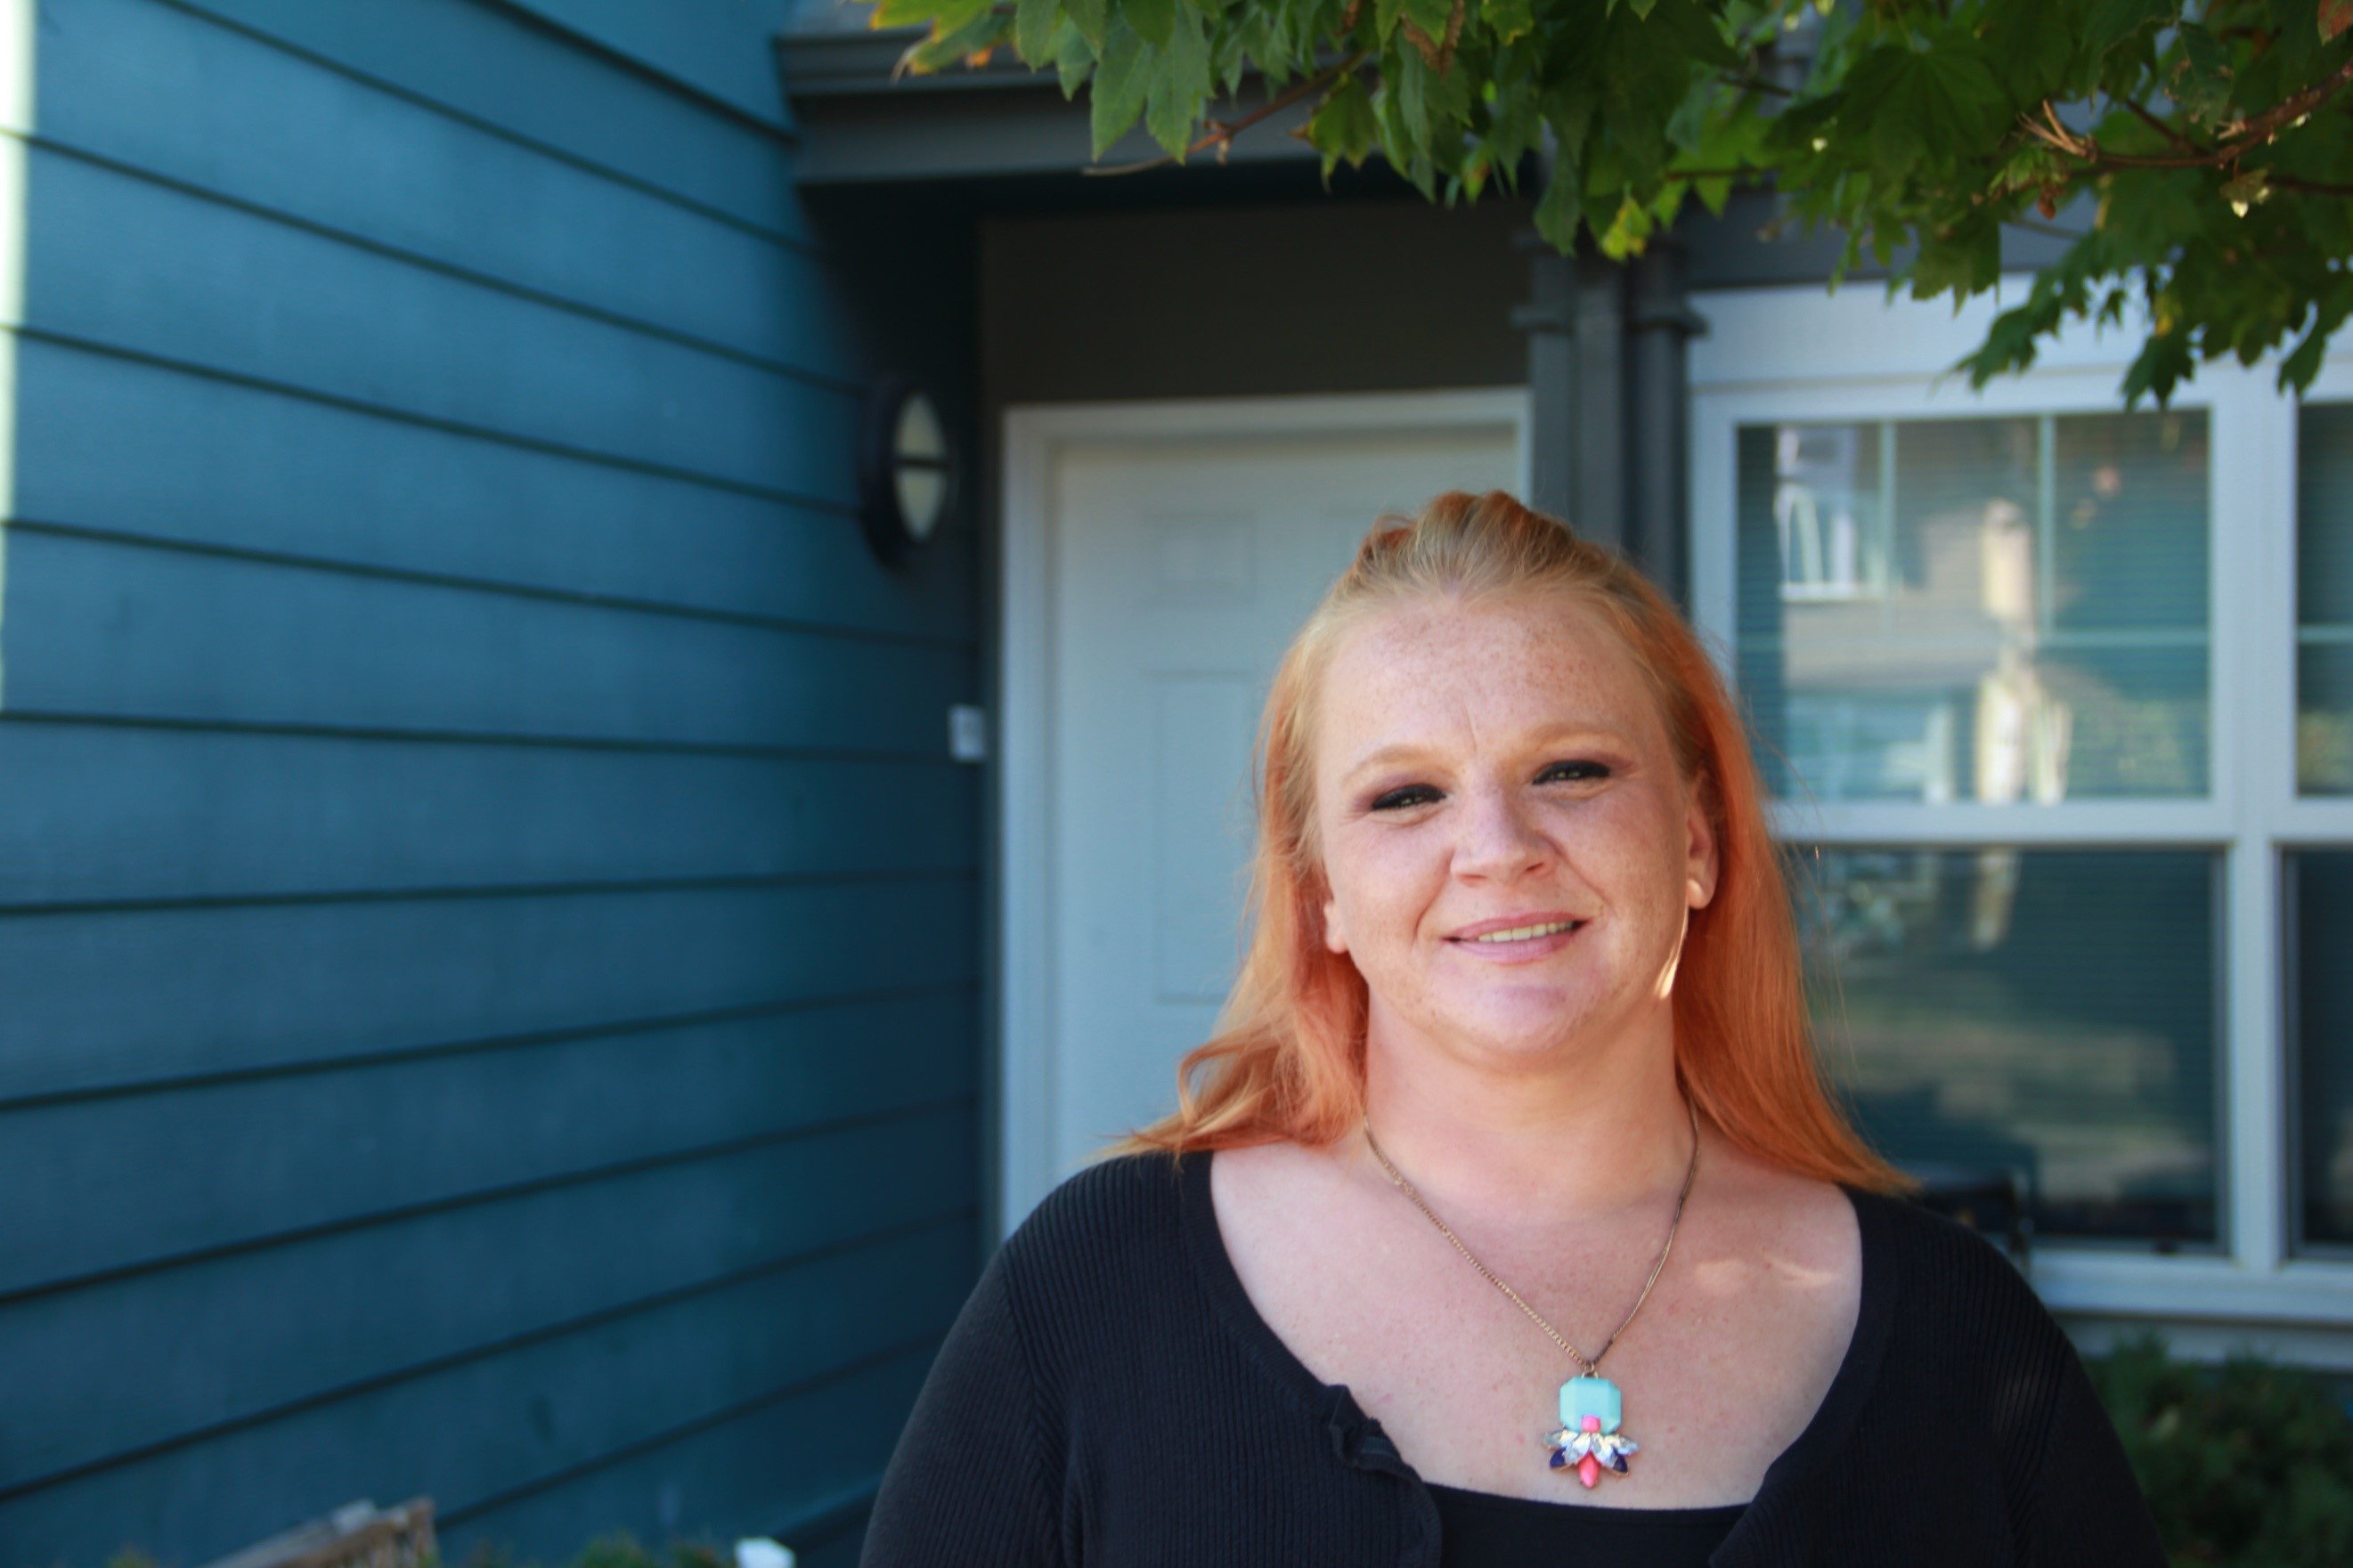 Tacoma Rescue Mission New Life Program participant for housing